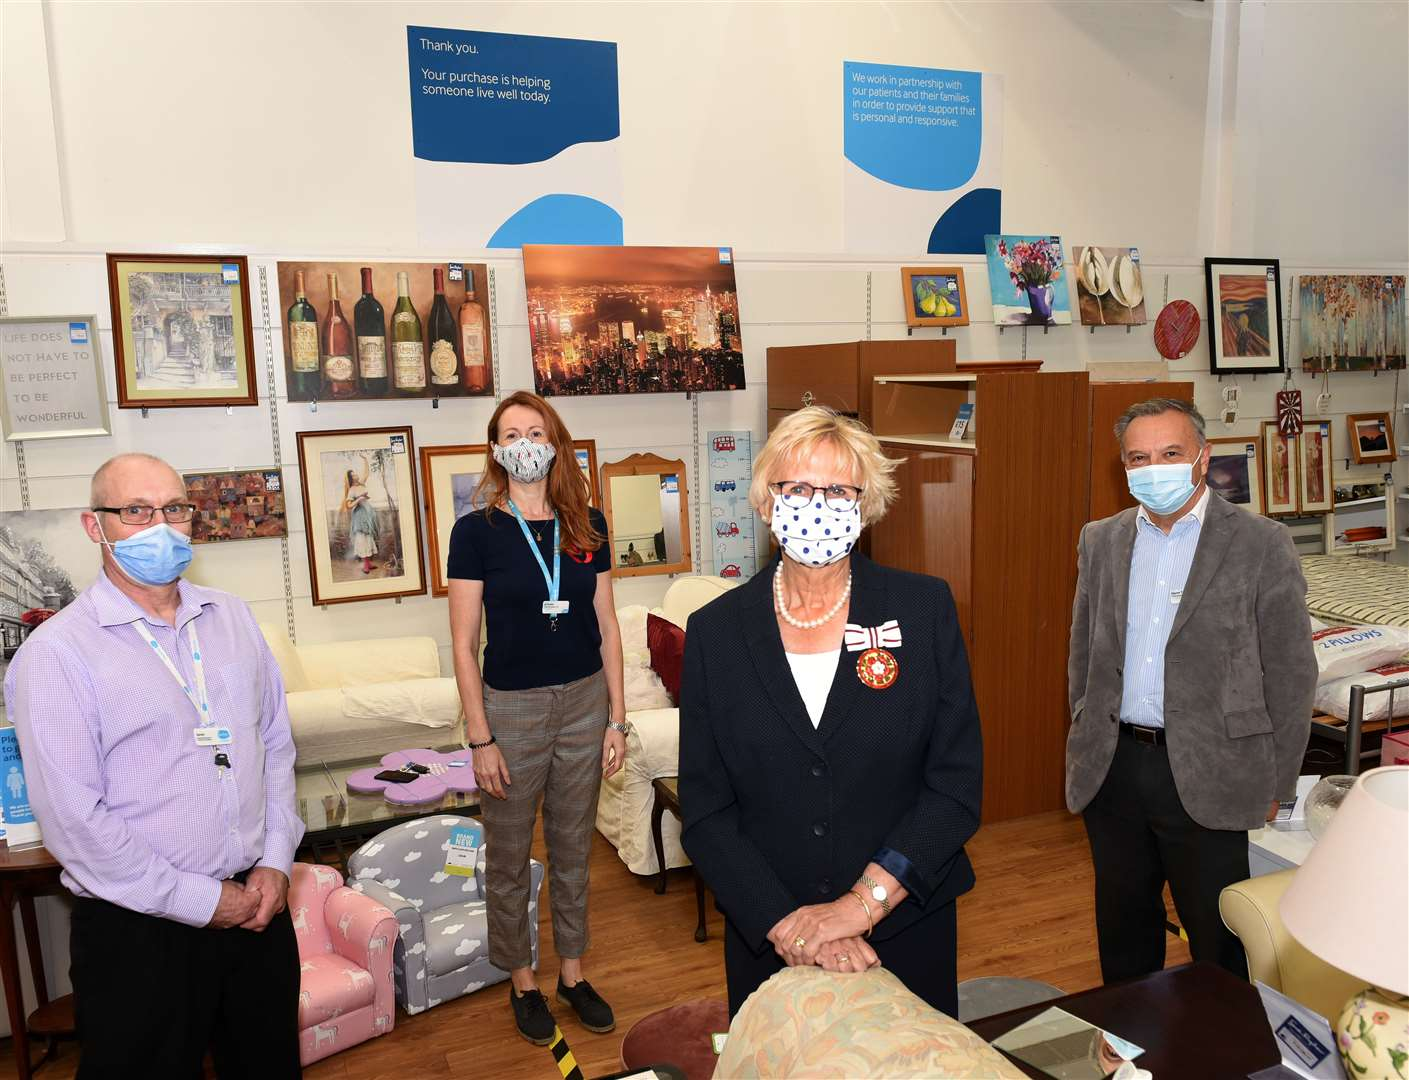 The Deputy Lord Lieutenant of Norfolk, Melinda Raker, visiting the Sue Ryder Shop at Unit 1 St Nicholas Retail Park King's Lynn on Wednesday 26th August. Pictured are David Wheelhouse, Jo Panks, deputy lieutenant of Norfolk, Melinda Raker and Glynn Taylor. Pictures: Paul Marsh